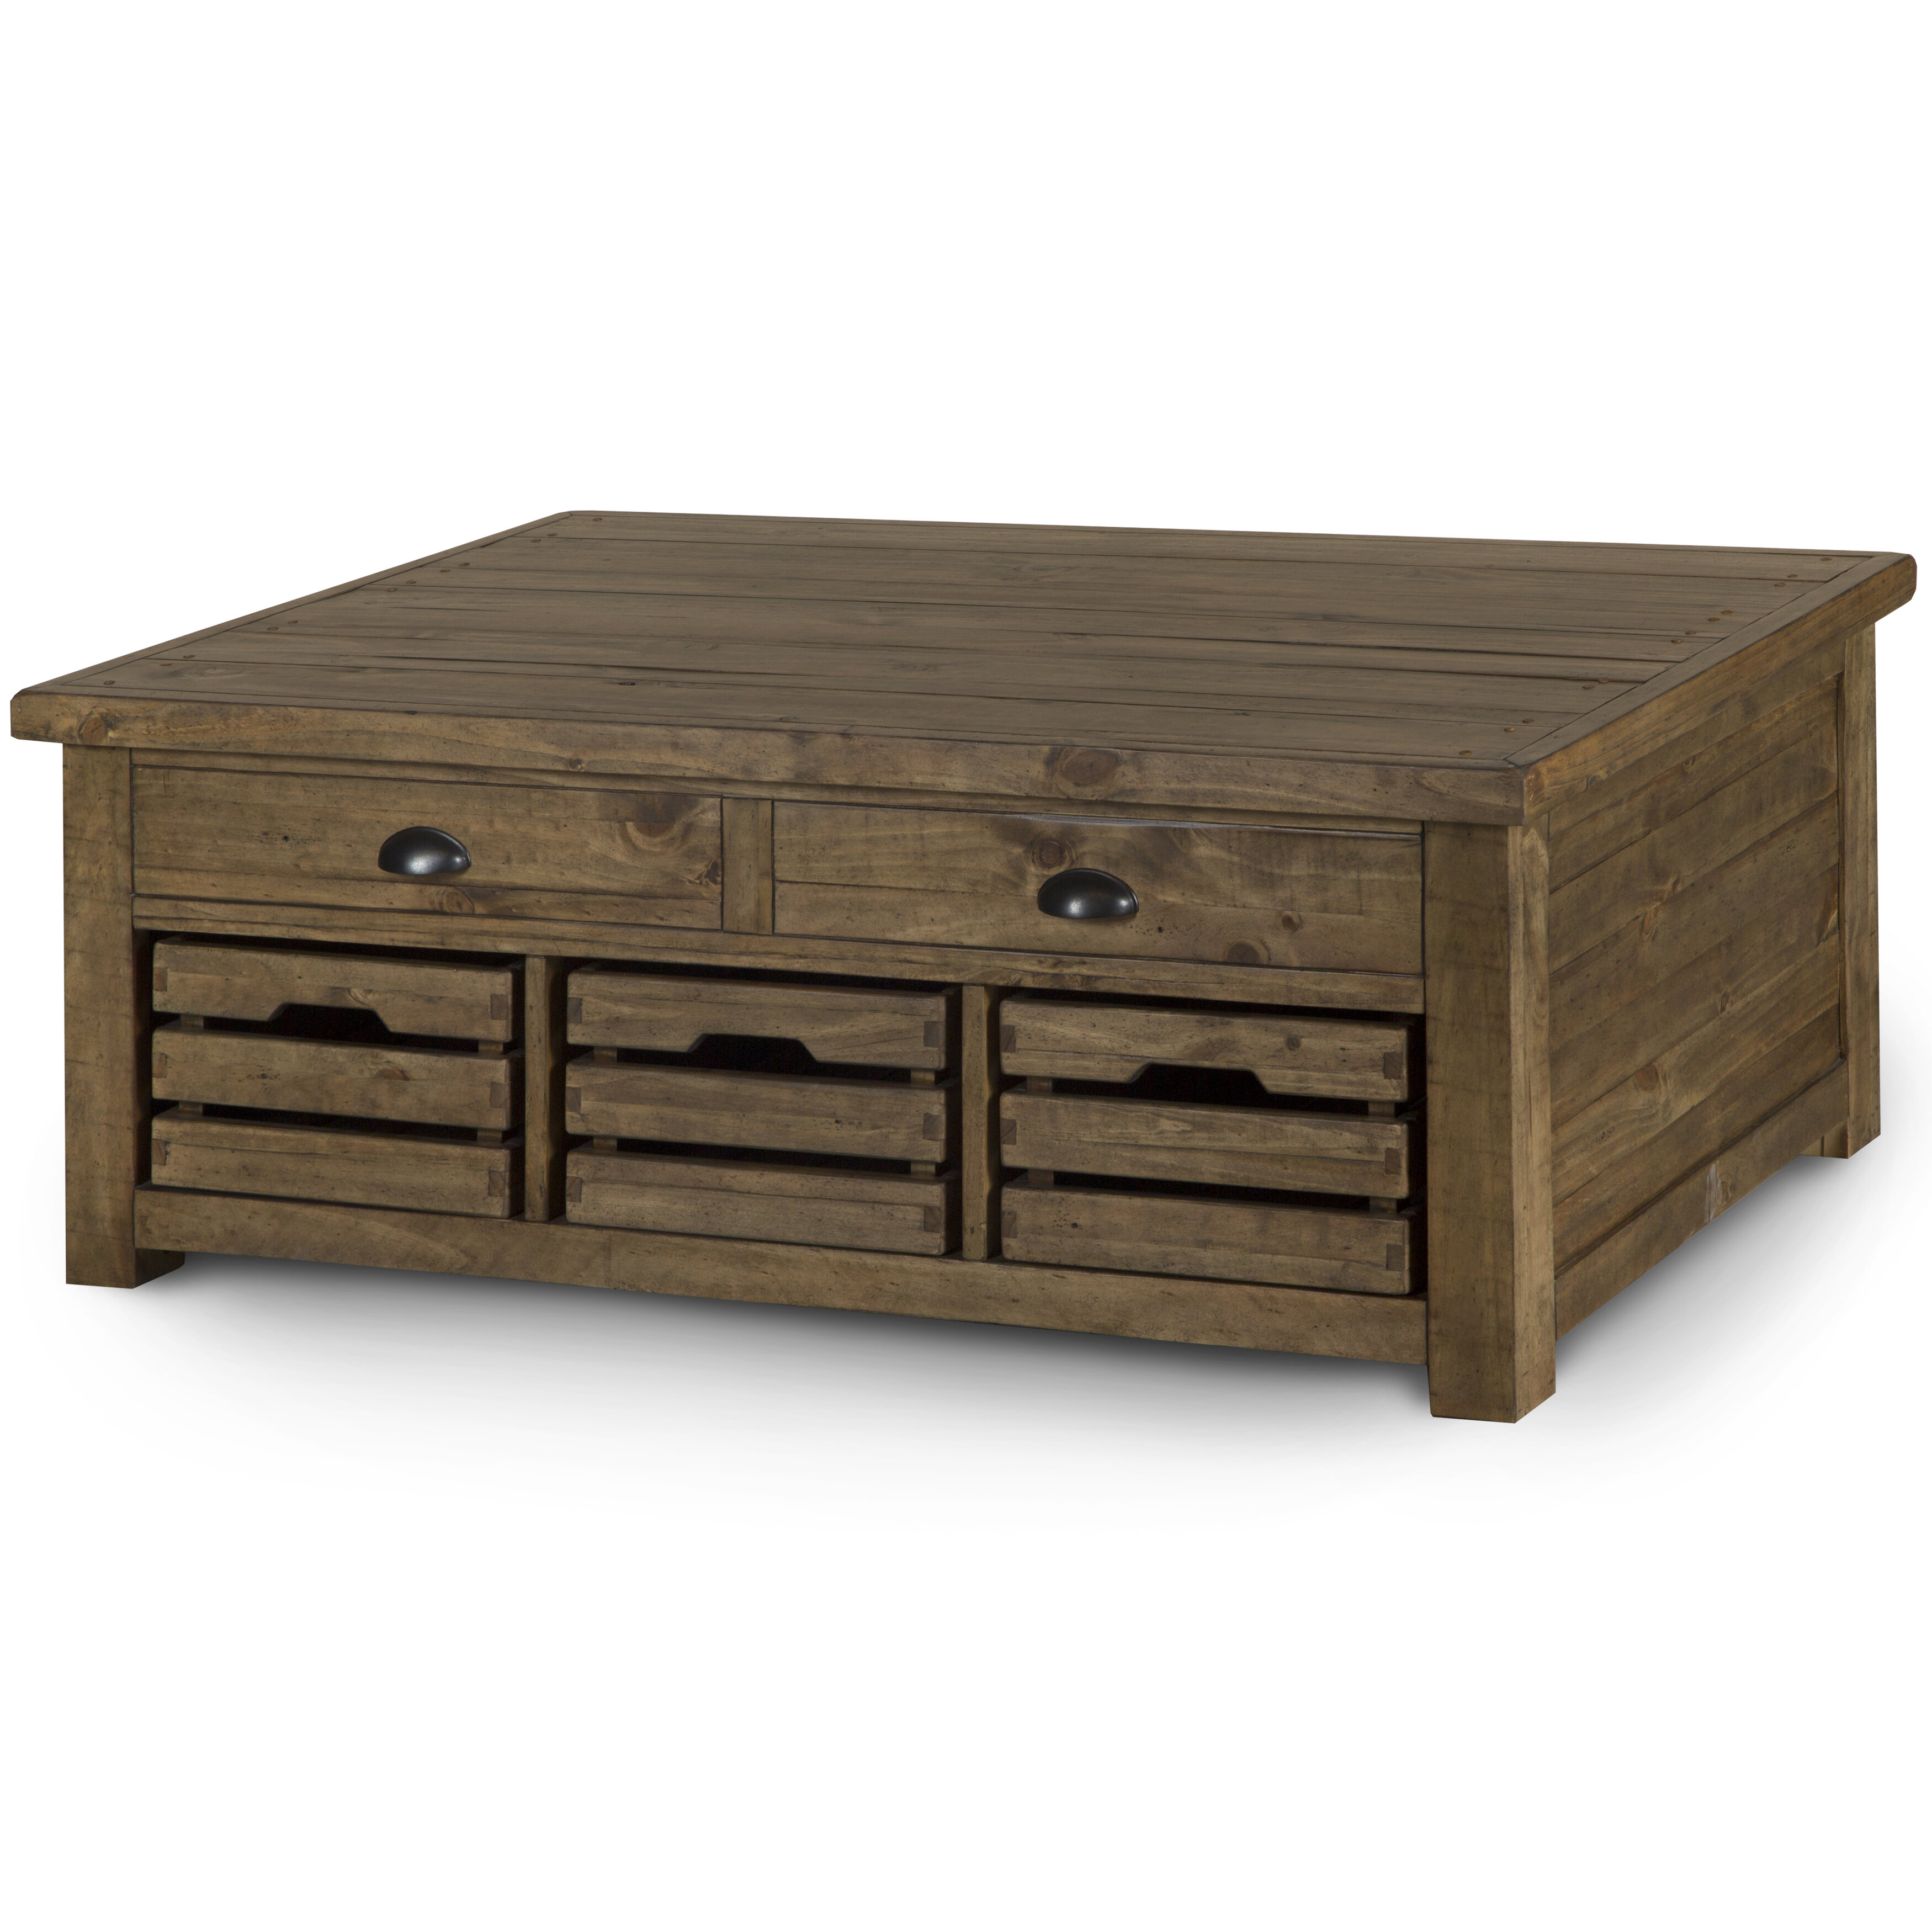 Senoia lift top cocktail table with storage reviews joss main